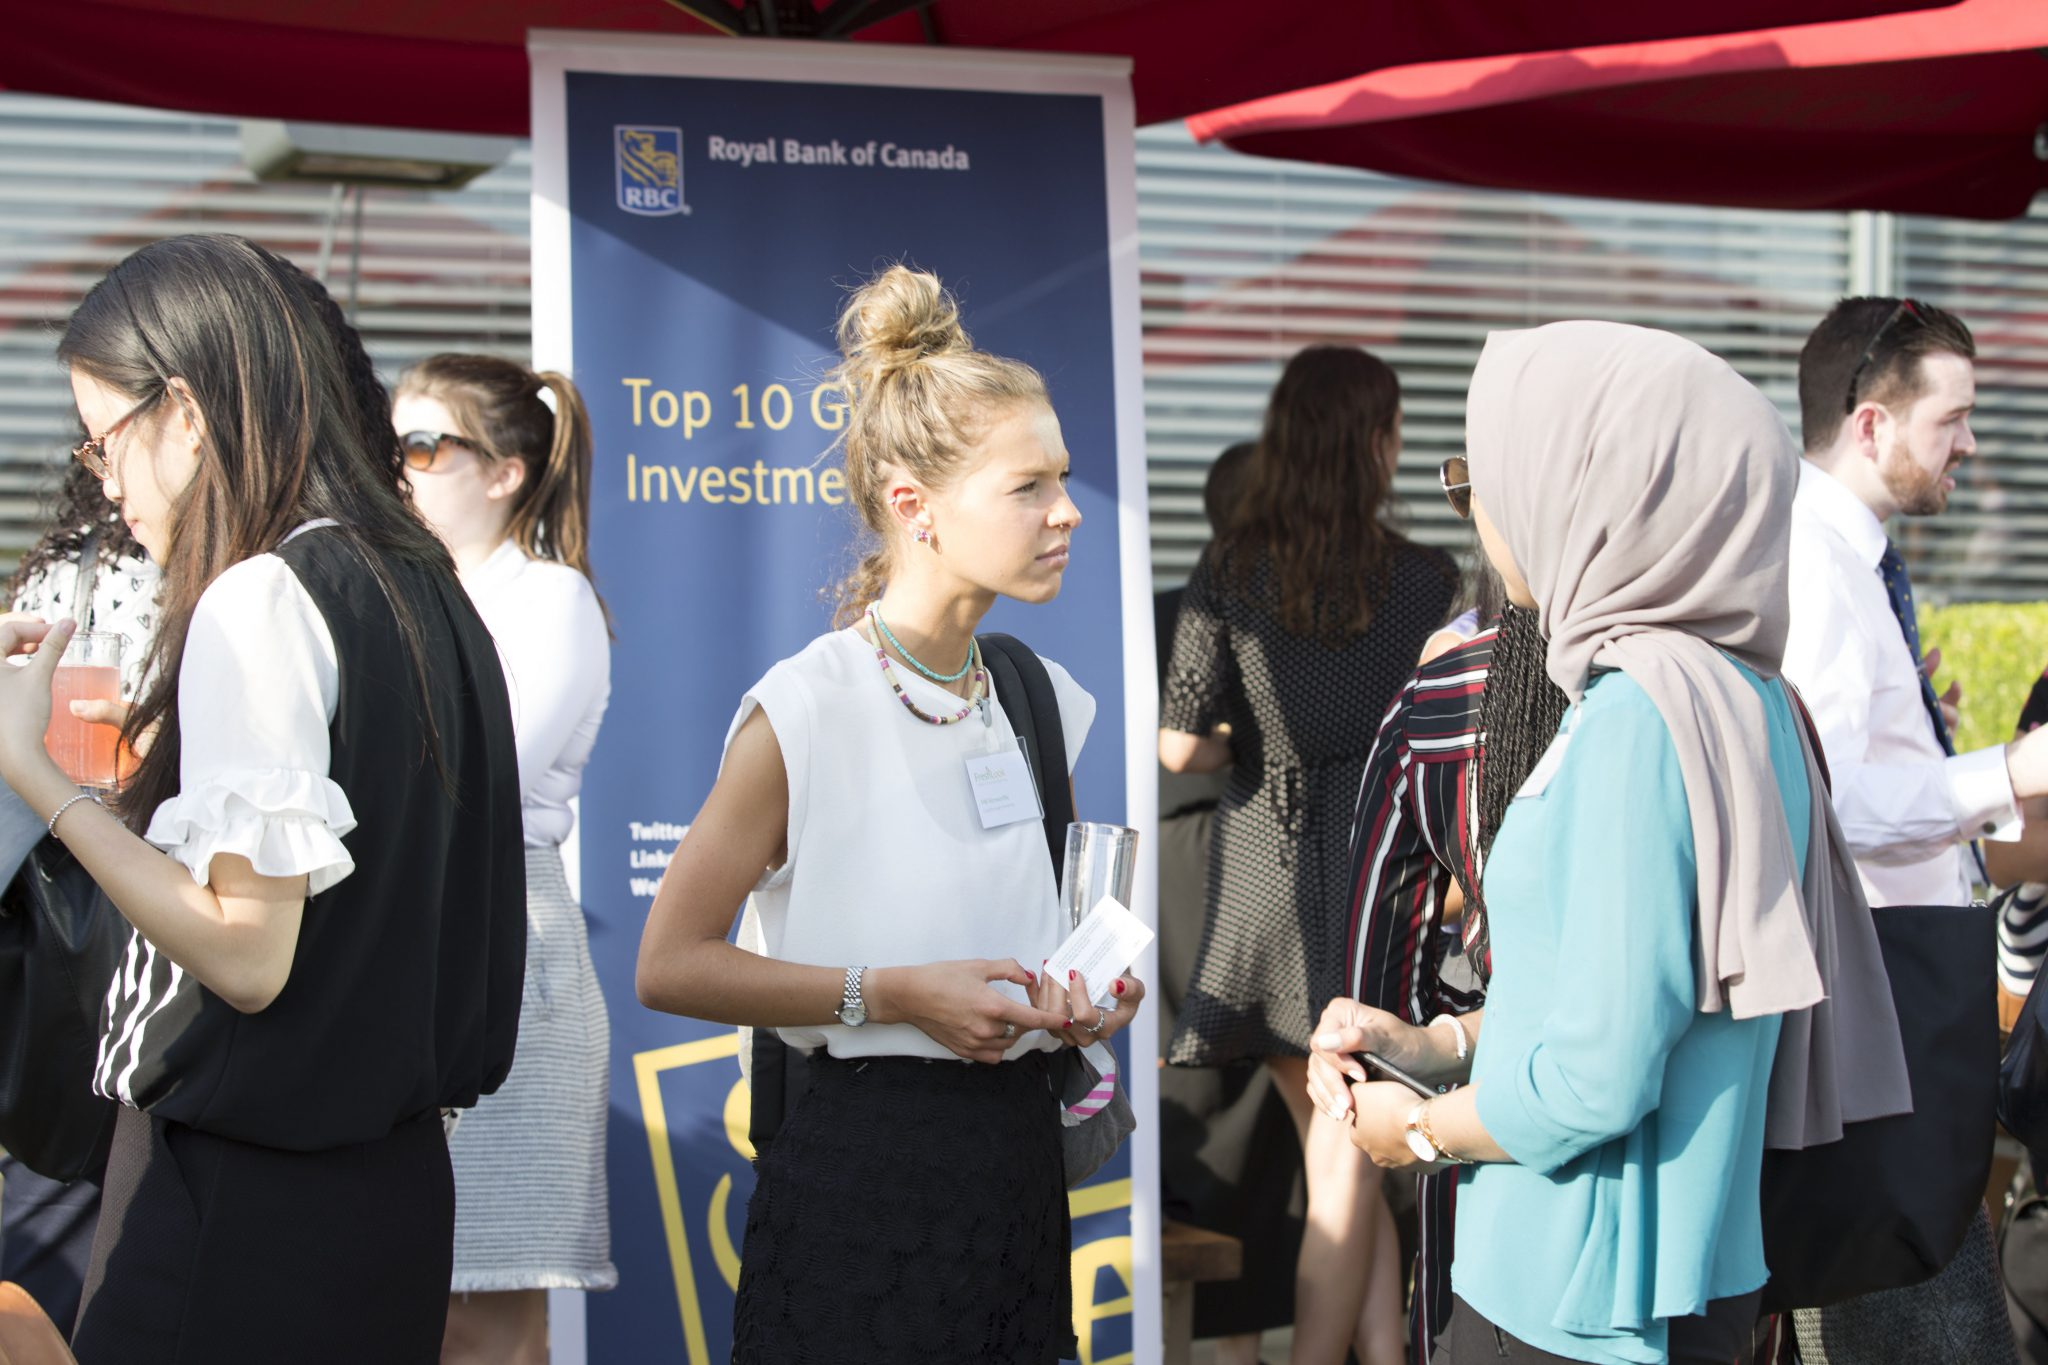 Group of people gathering outside and networking during a FreshLook event